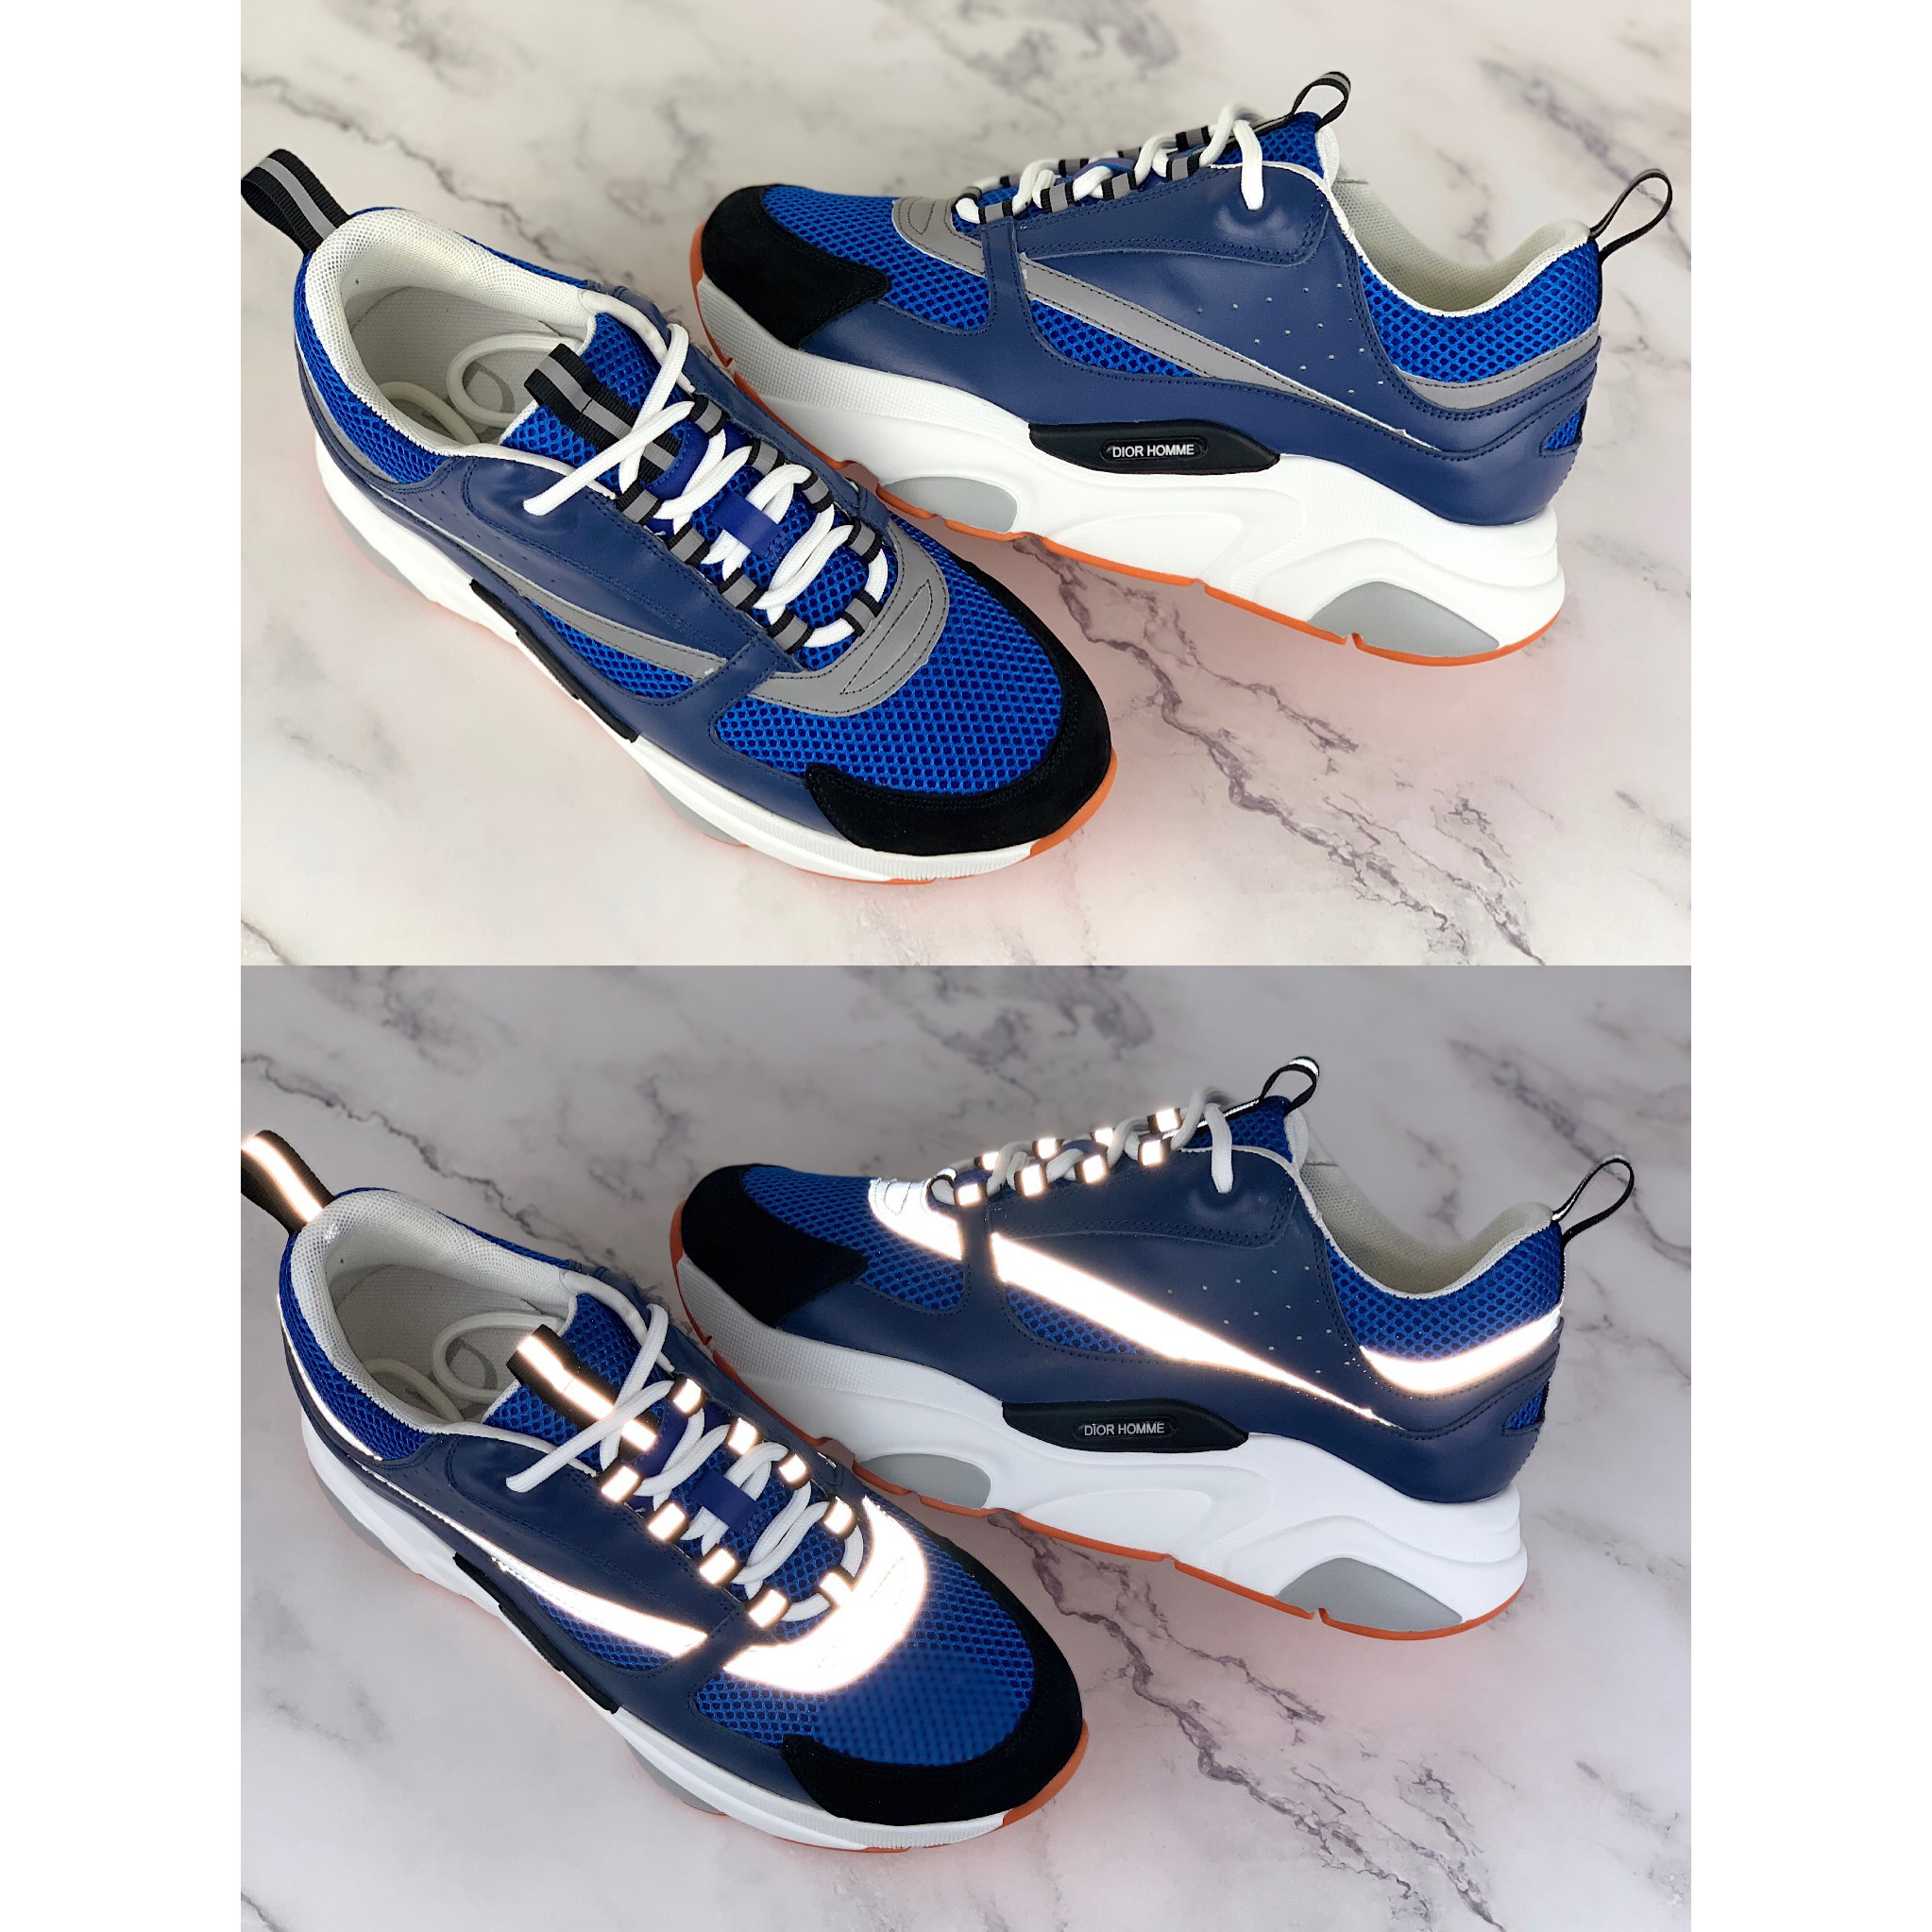 Dior Canvas and Calfskin Sneakers in Blue - FashionBeast